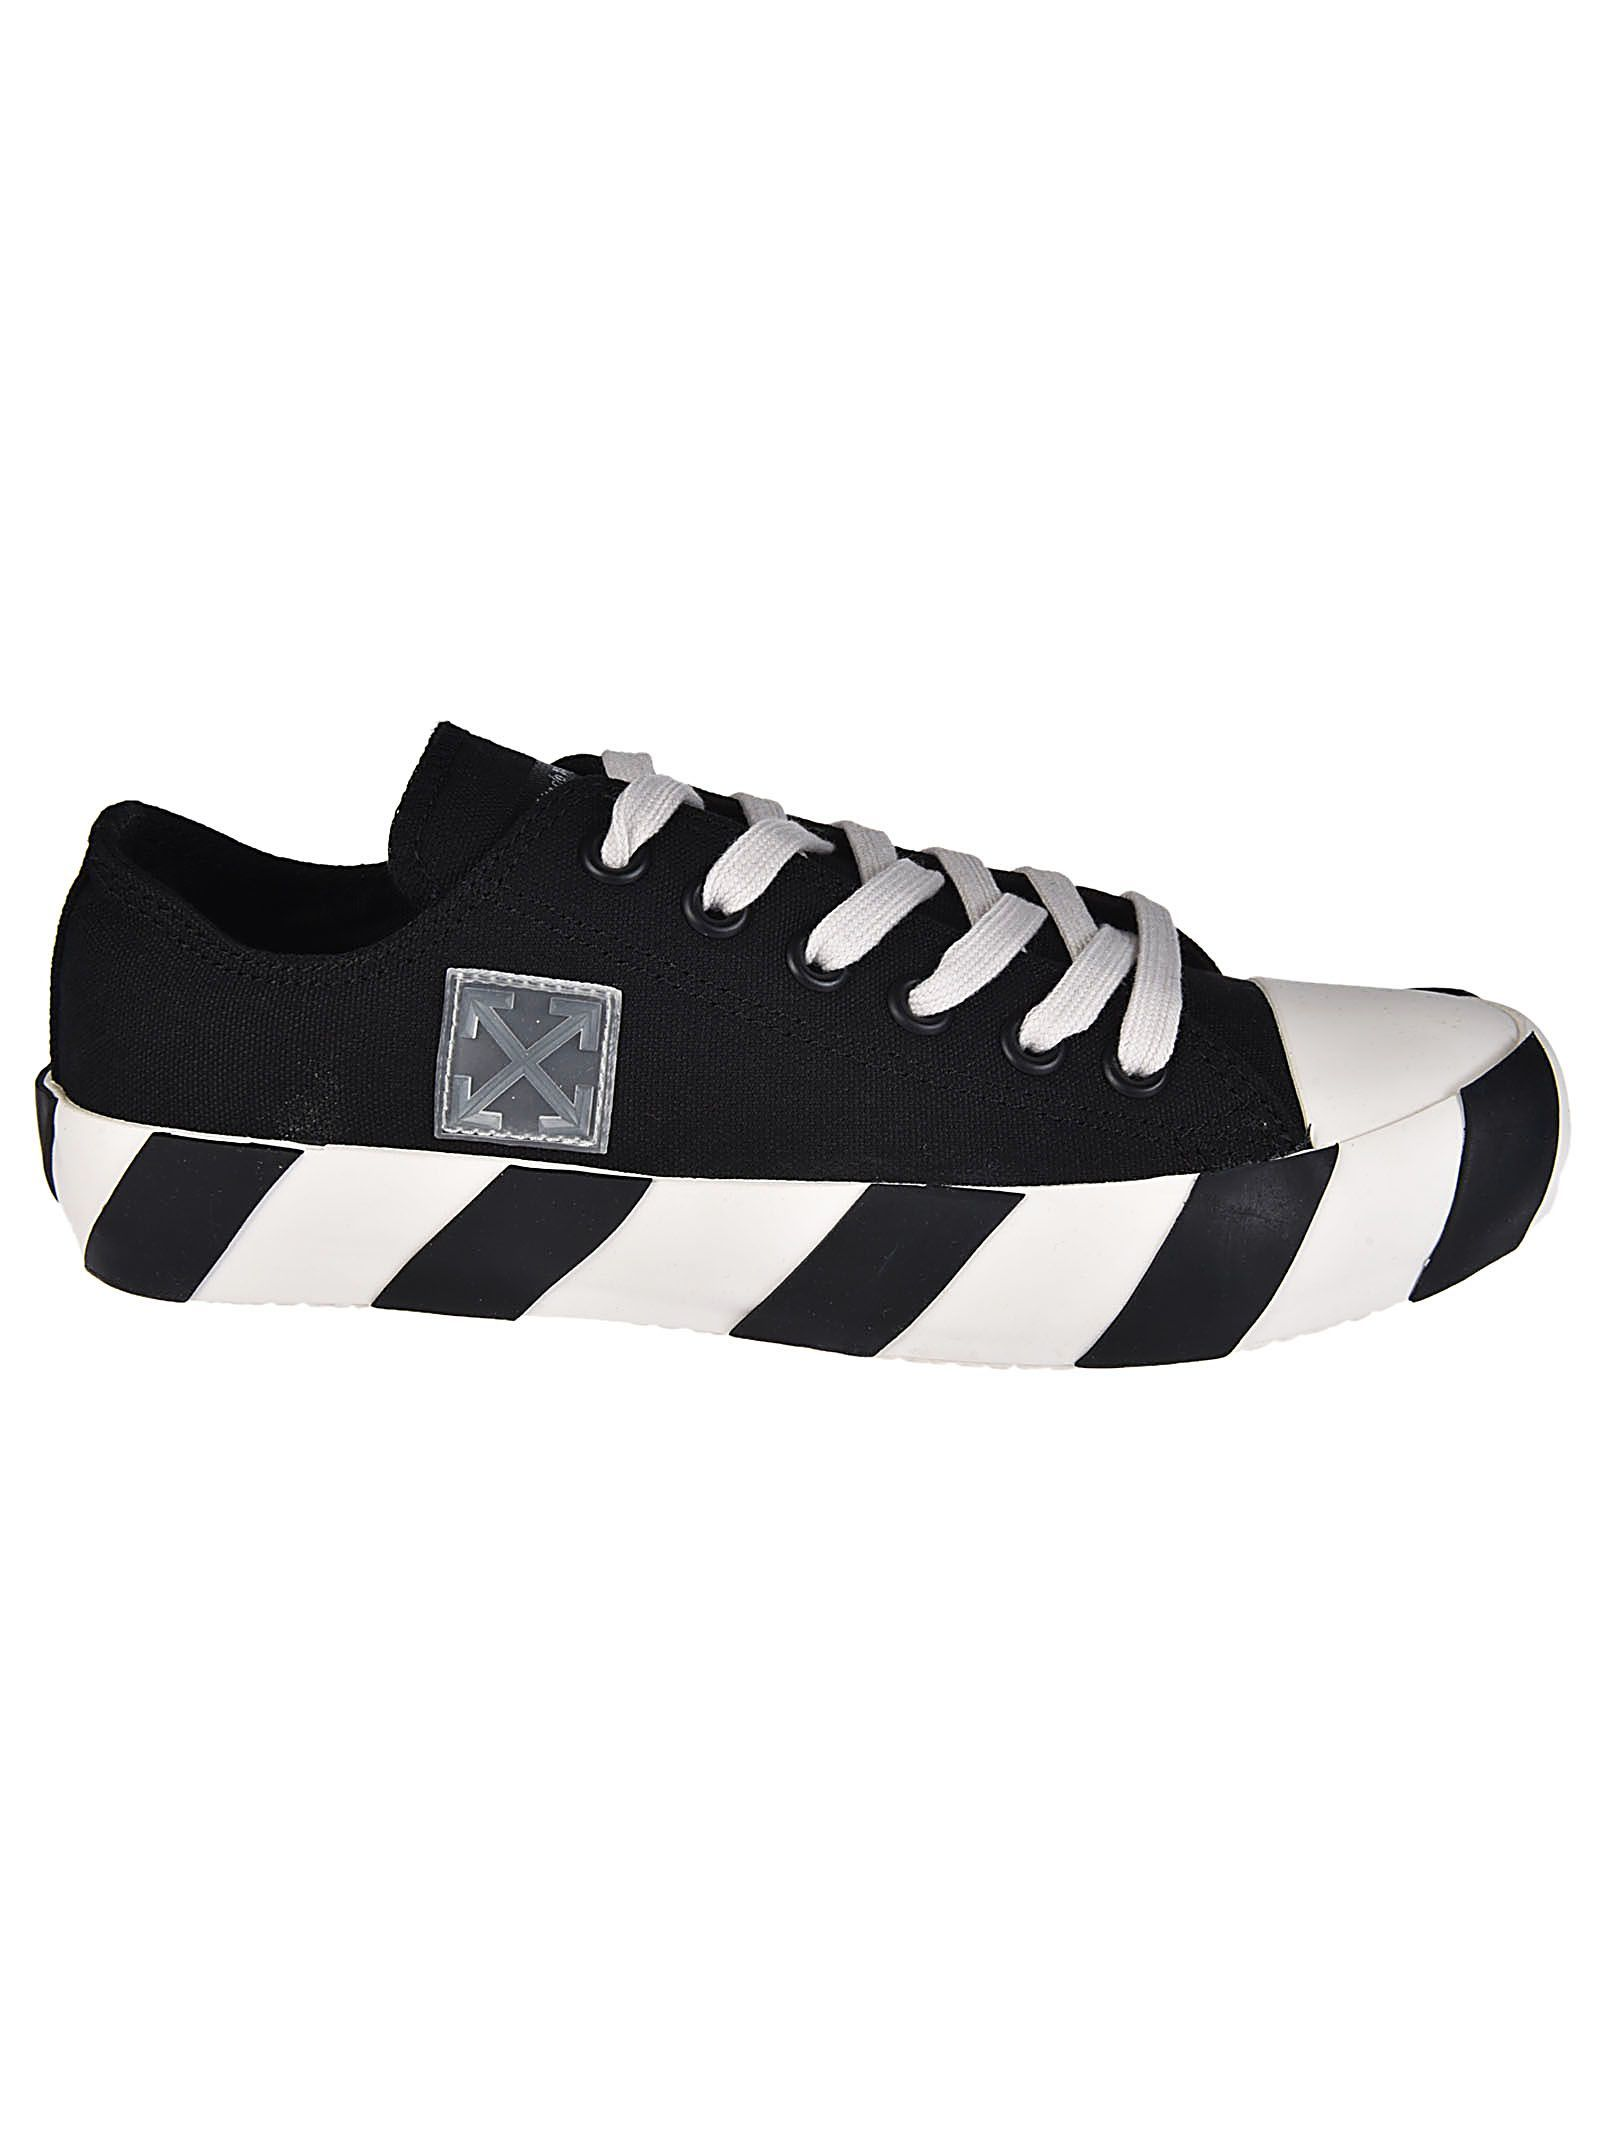 OFF-WHITE OFF-WHITE STRIPED SOLE TENNIS SNEAKERS.  off-white  shoes ... 54c91b2bf16f